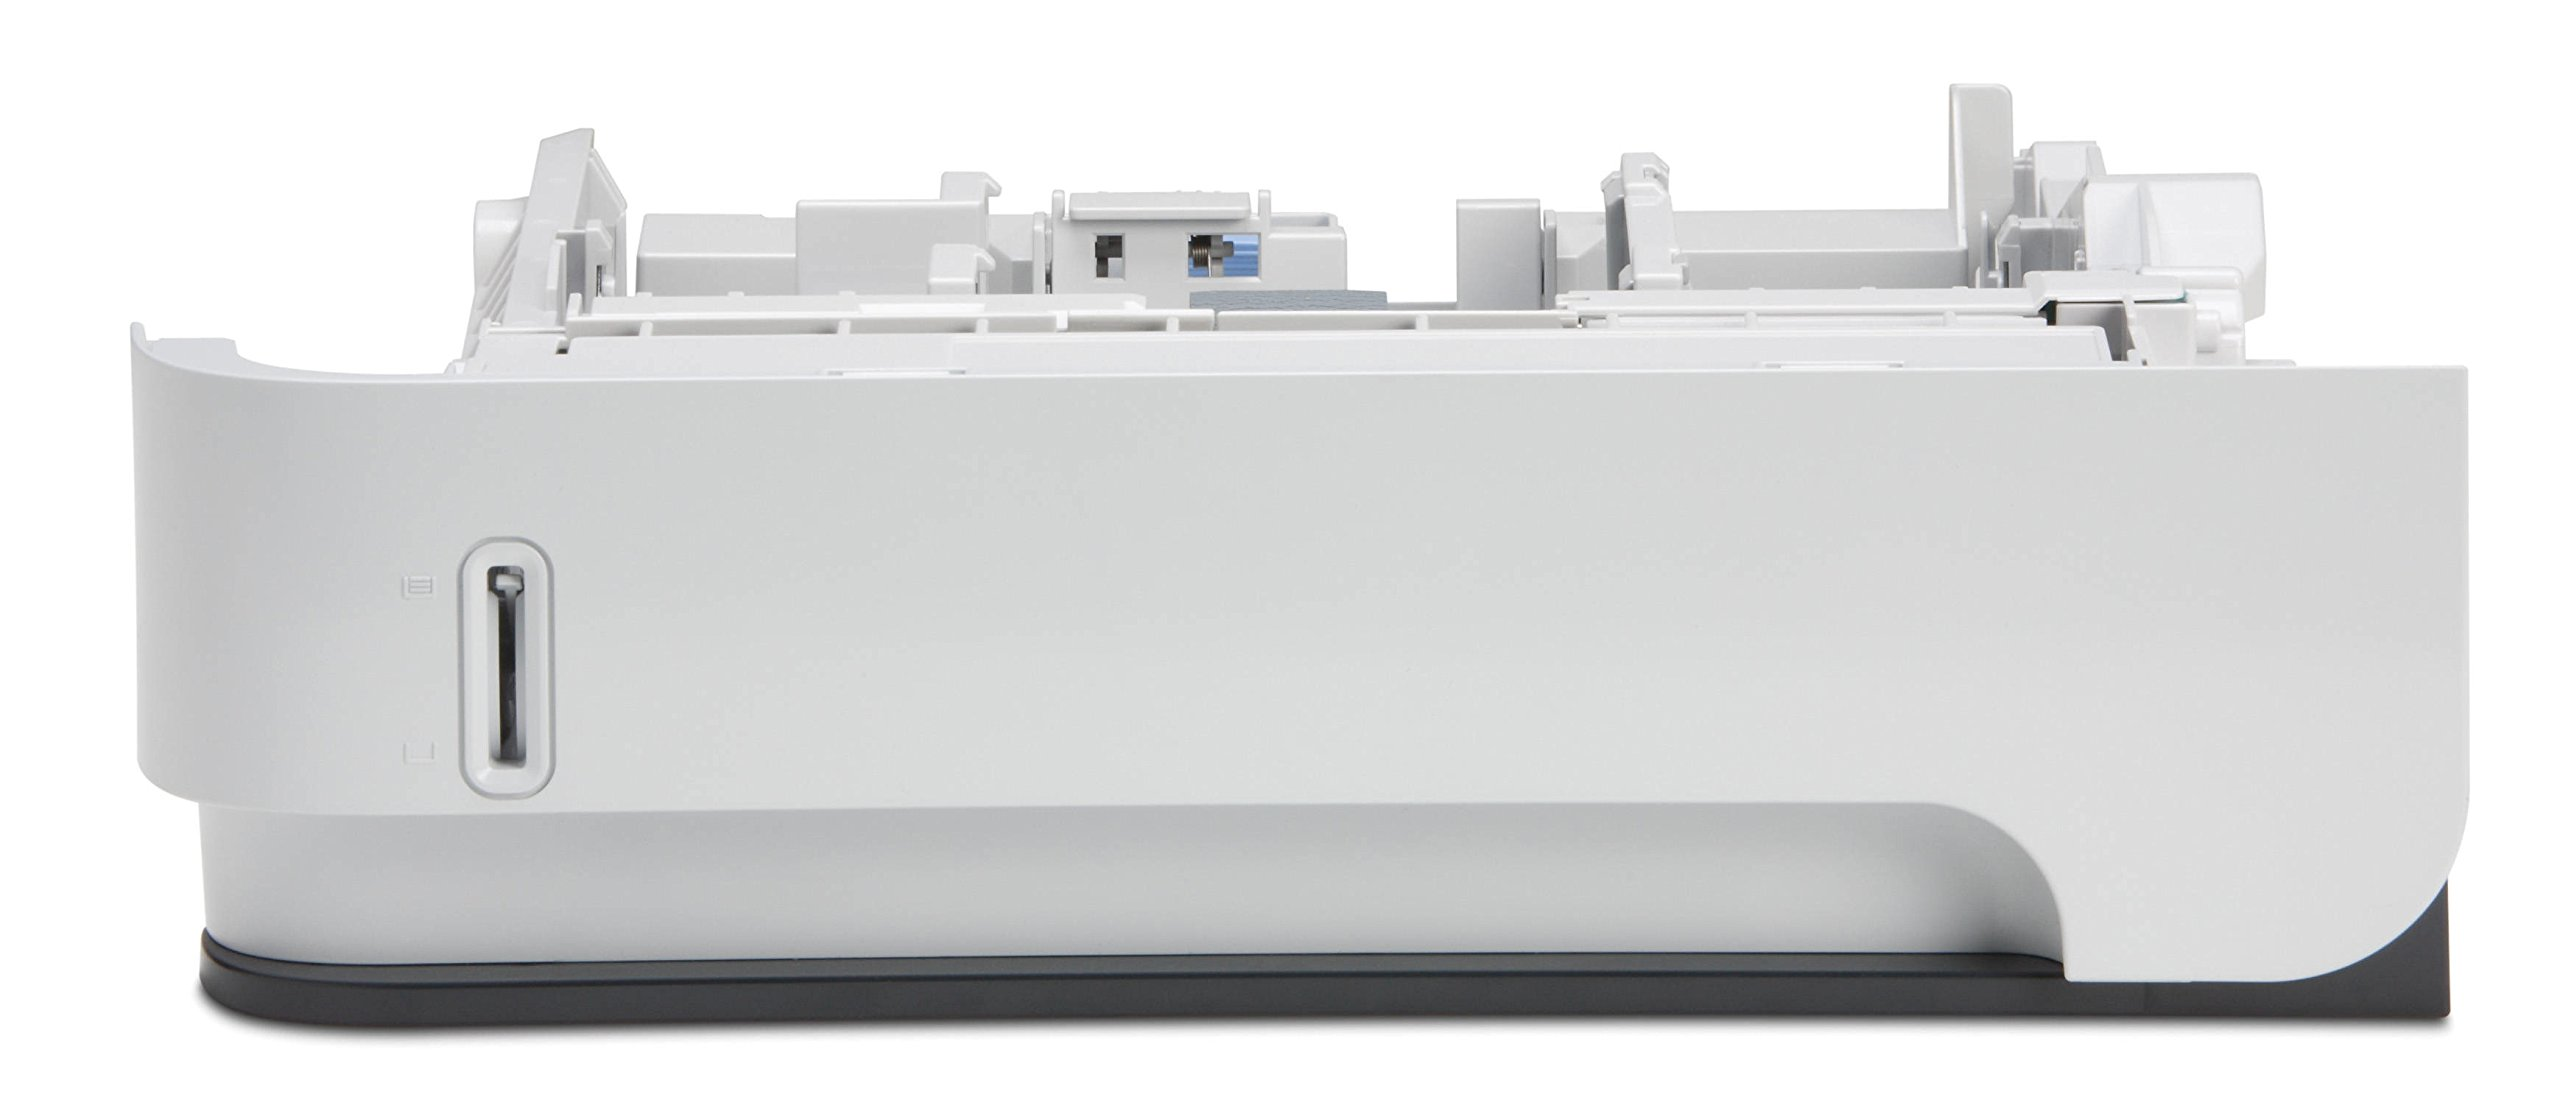 400 Sheet Media Tray For P4014, P4015 and P4510 Printer Paper